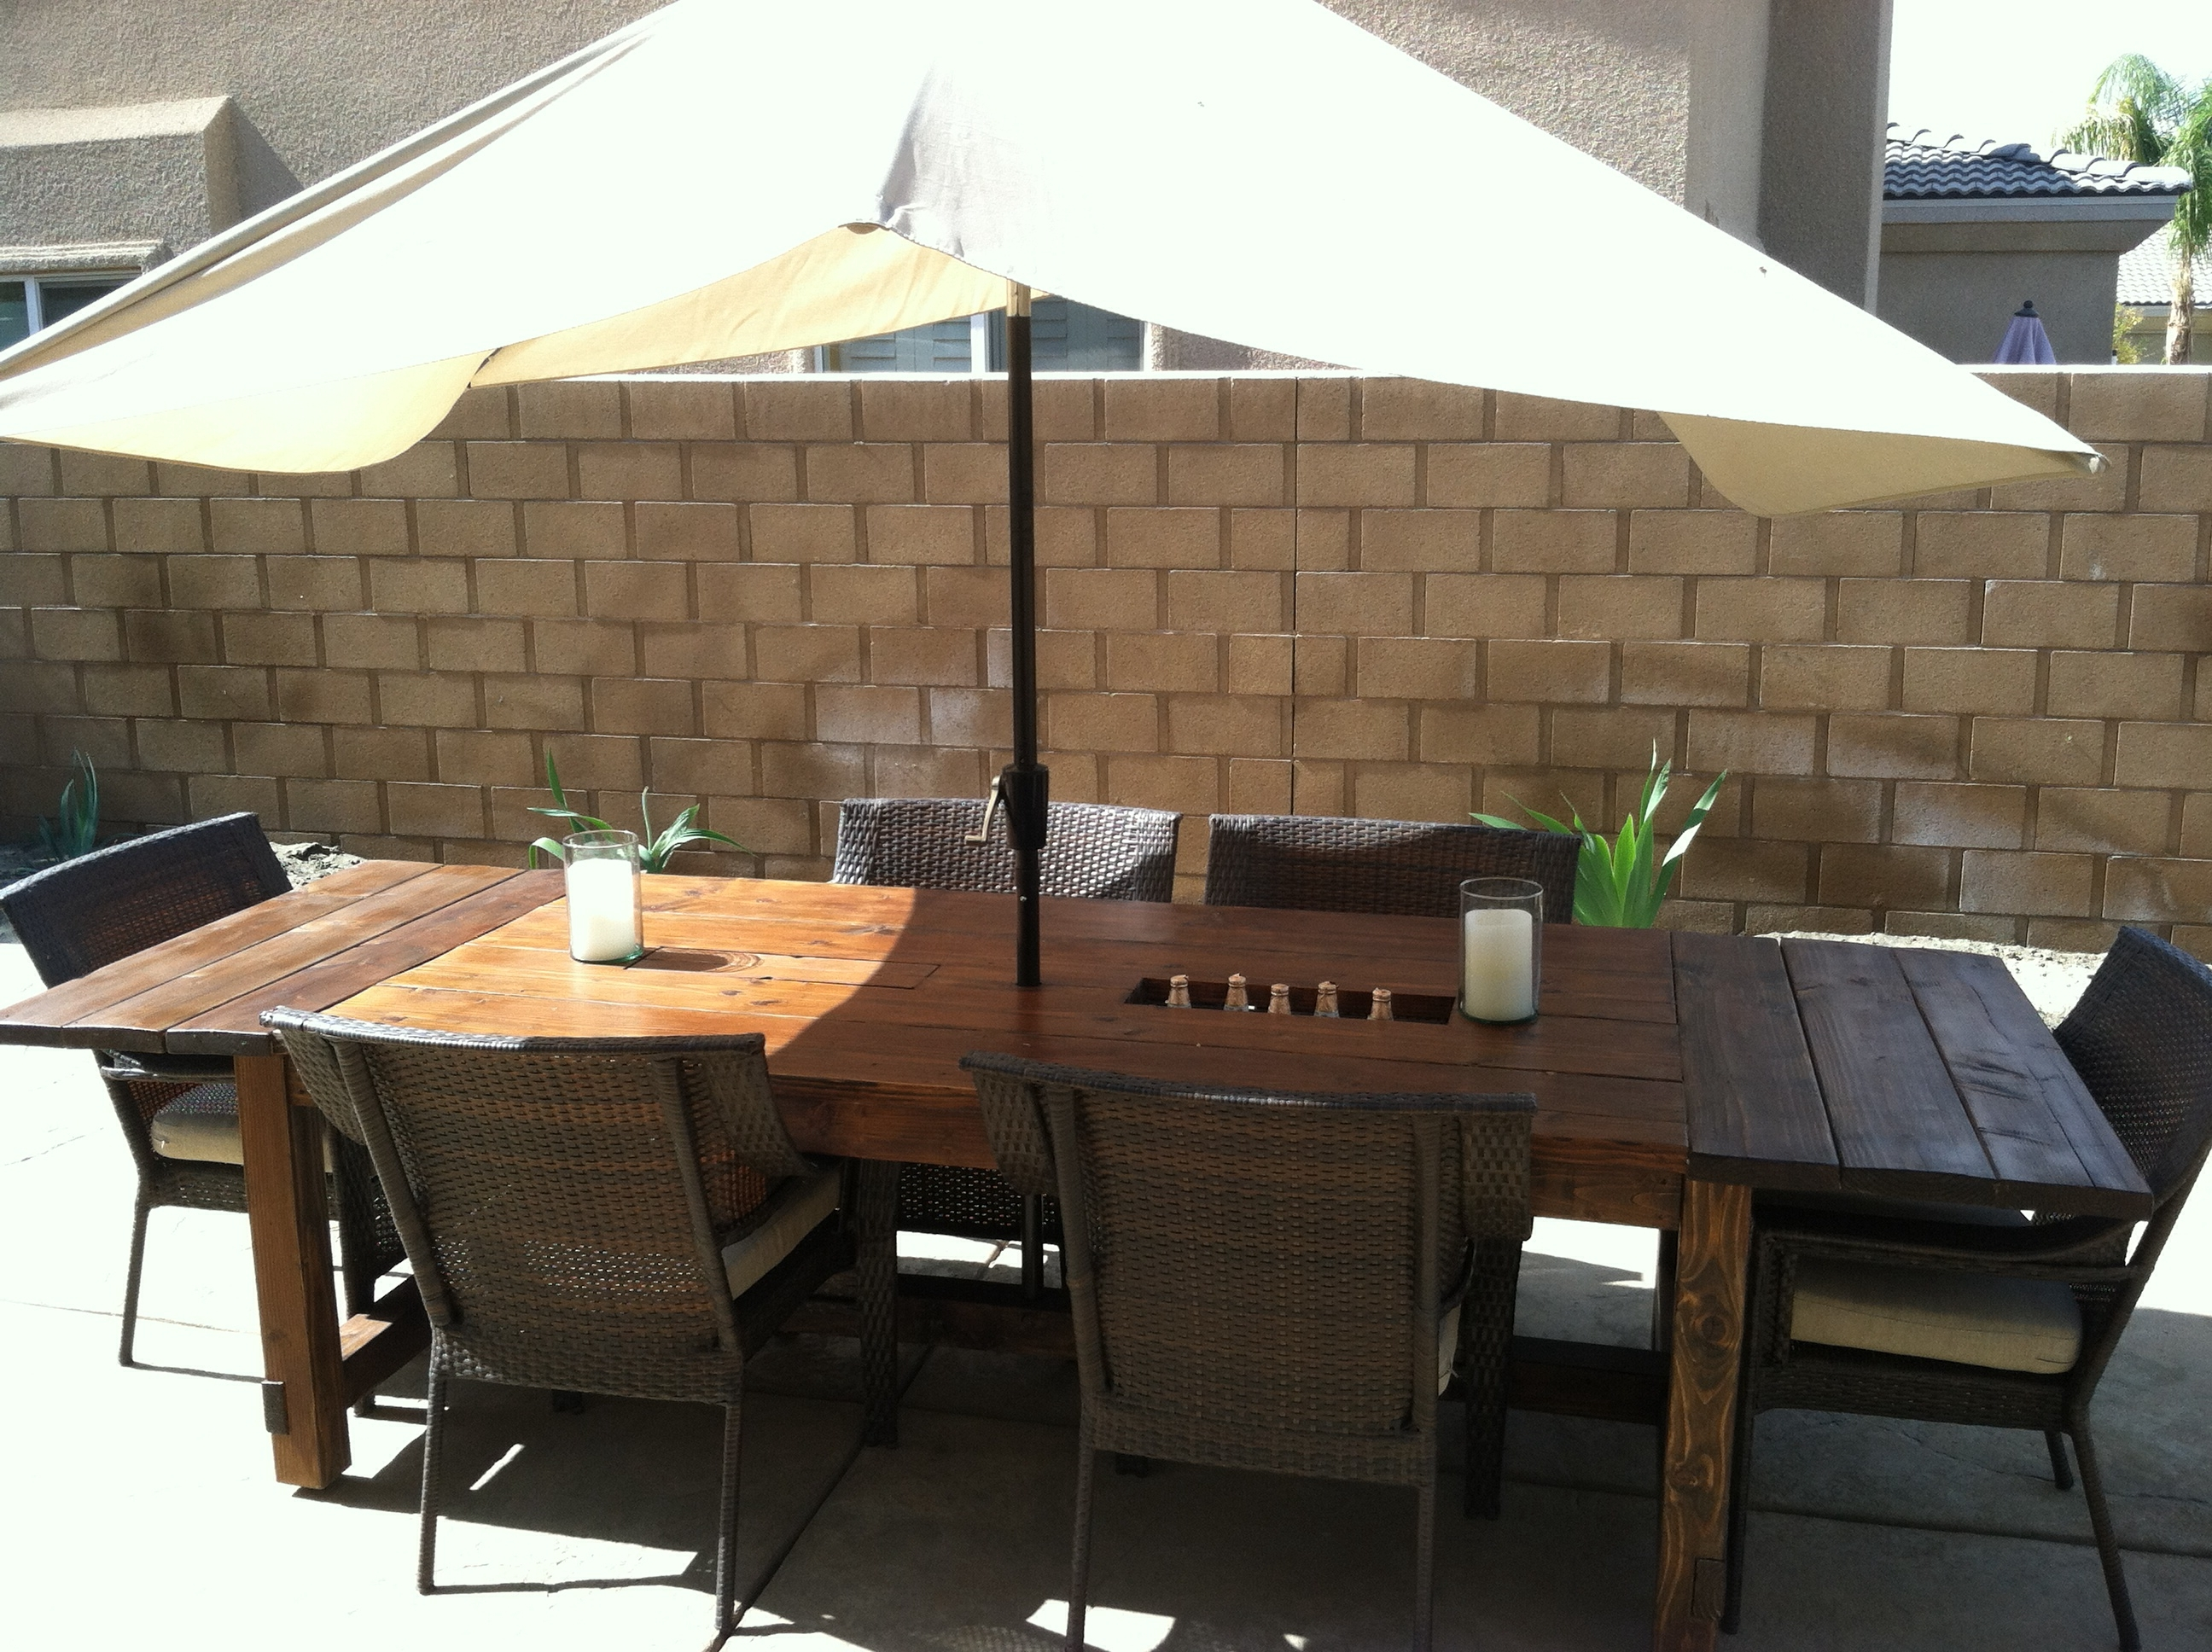 Most Popular Patio Conversation Sets With Umbrella Regarding Patio : Patio Table Umbrella Patio Table (View 10 of 20)